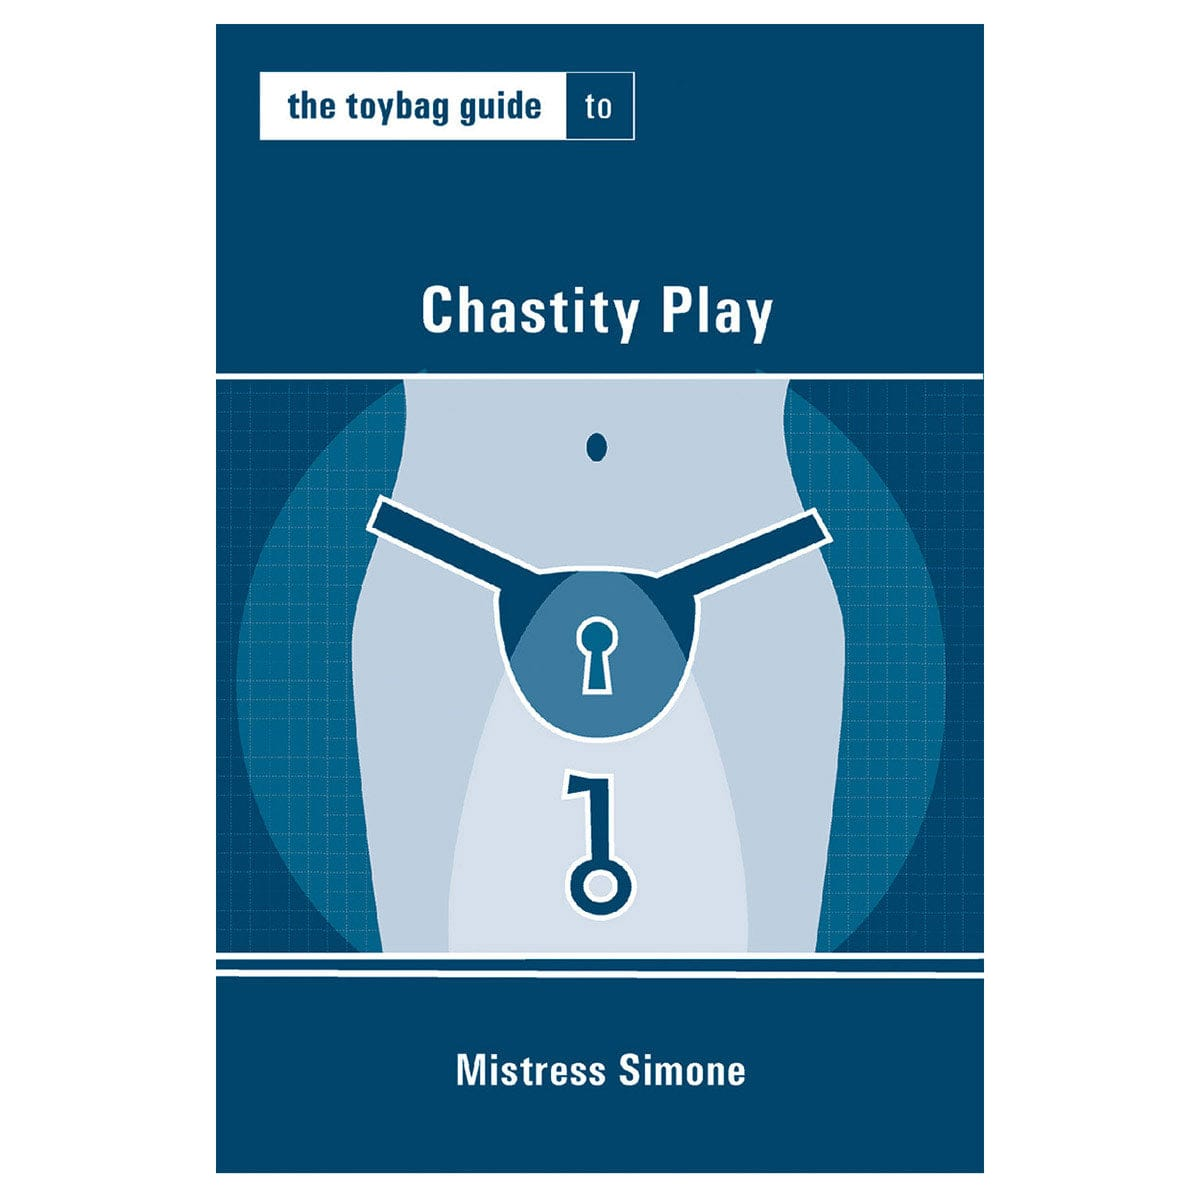 Toybag Guide to Chastity Play by SCB - rolik